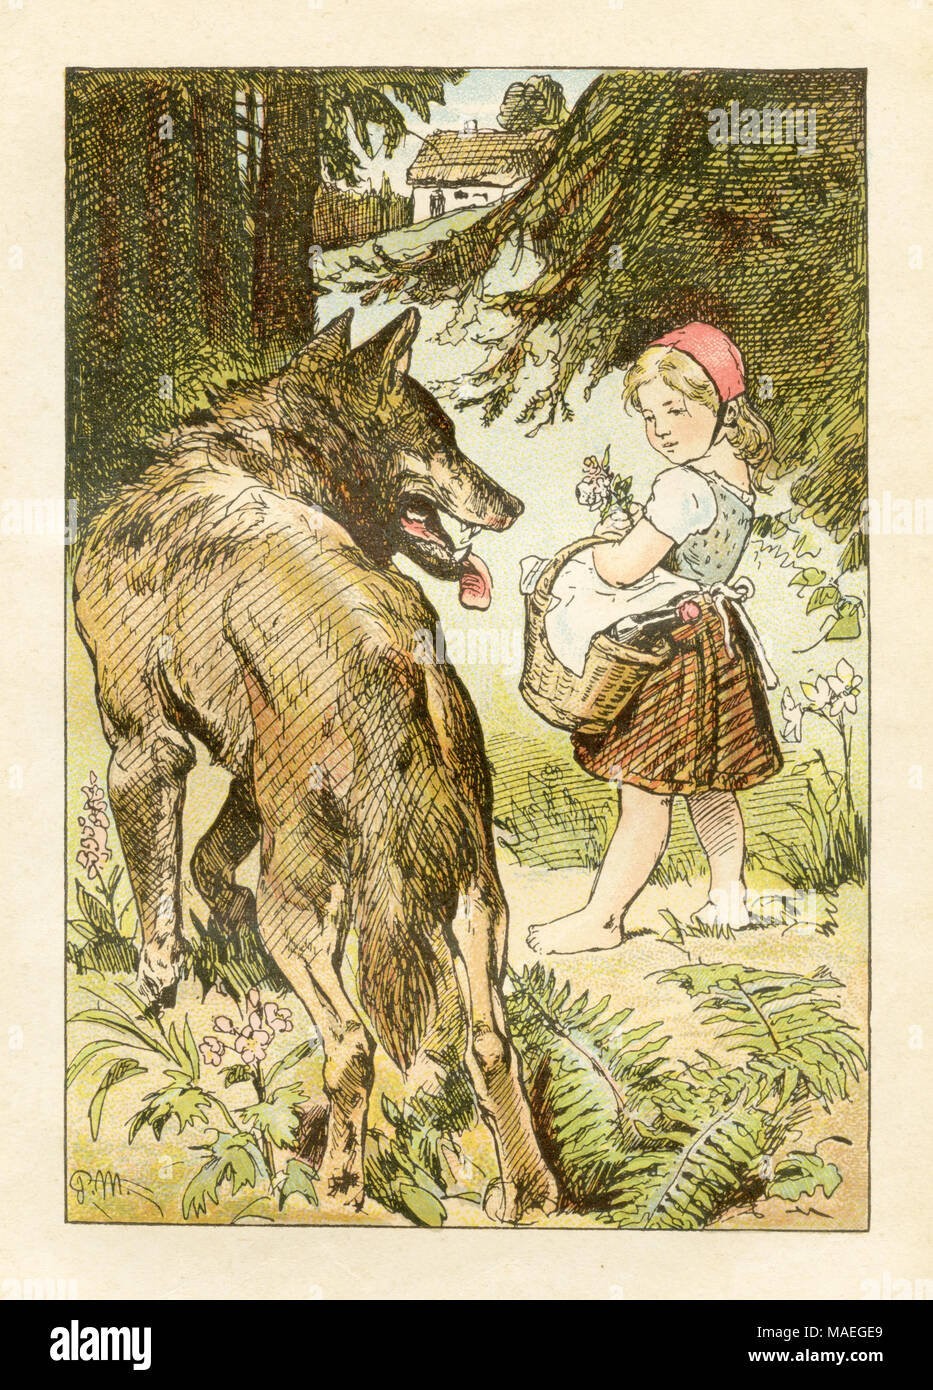 Little Red Riding Hood and the wolf. The wolf persuades the girl to move away from the path. Grimm's Fairytales, Paul Meyerheim, created 1870 (ca.), published 1907 Stock Photo